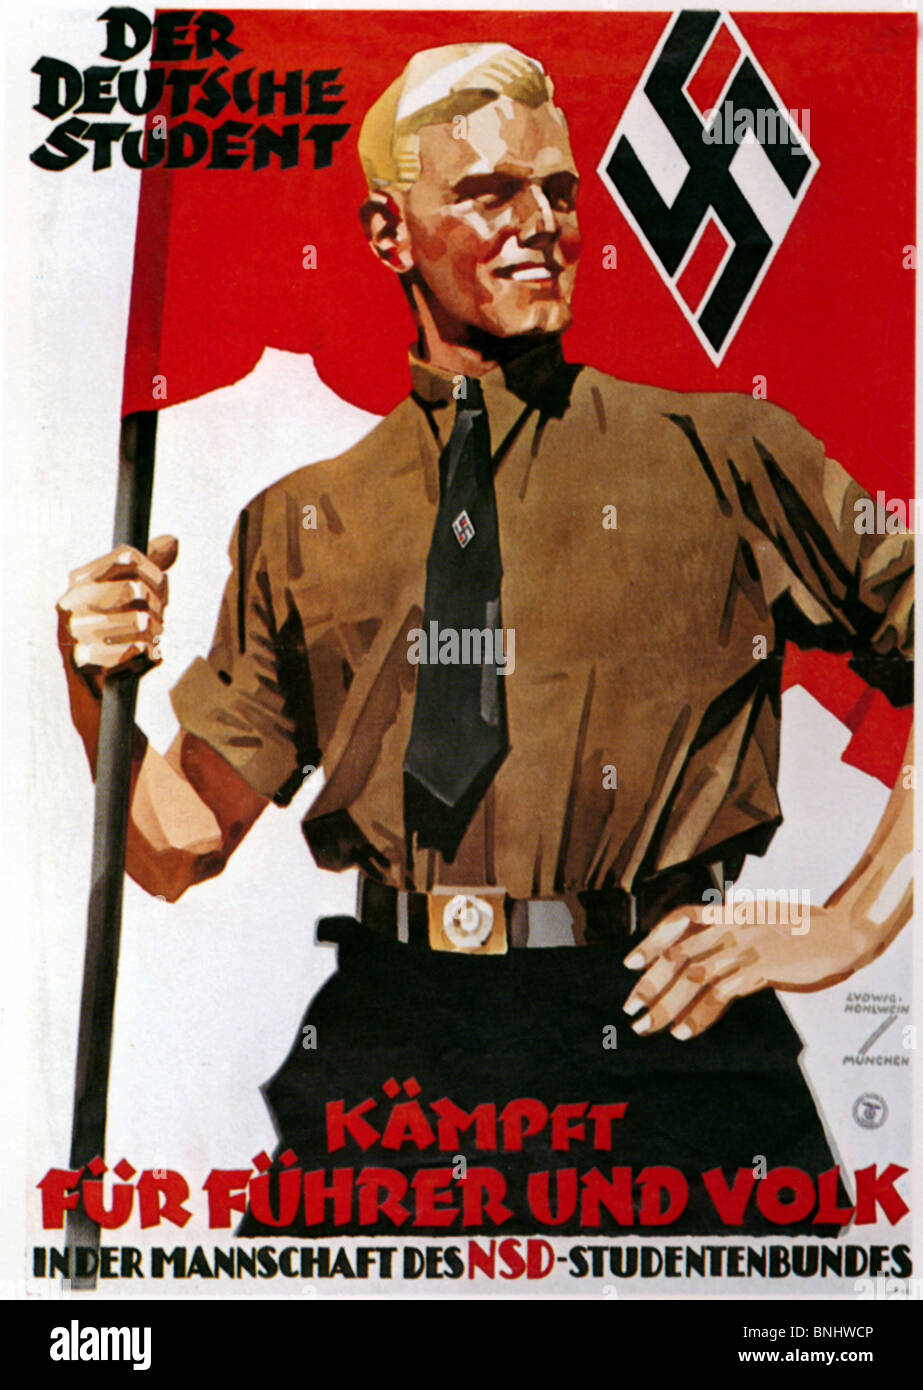 The German Student Poster Nazi Germany NS-Studentenbund 30s Thirties by Ludwig Hohlwein Nazism Germany history historic - Stock Image